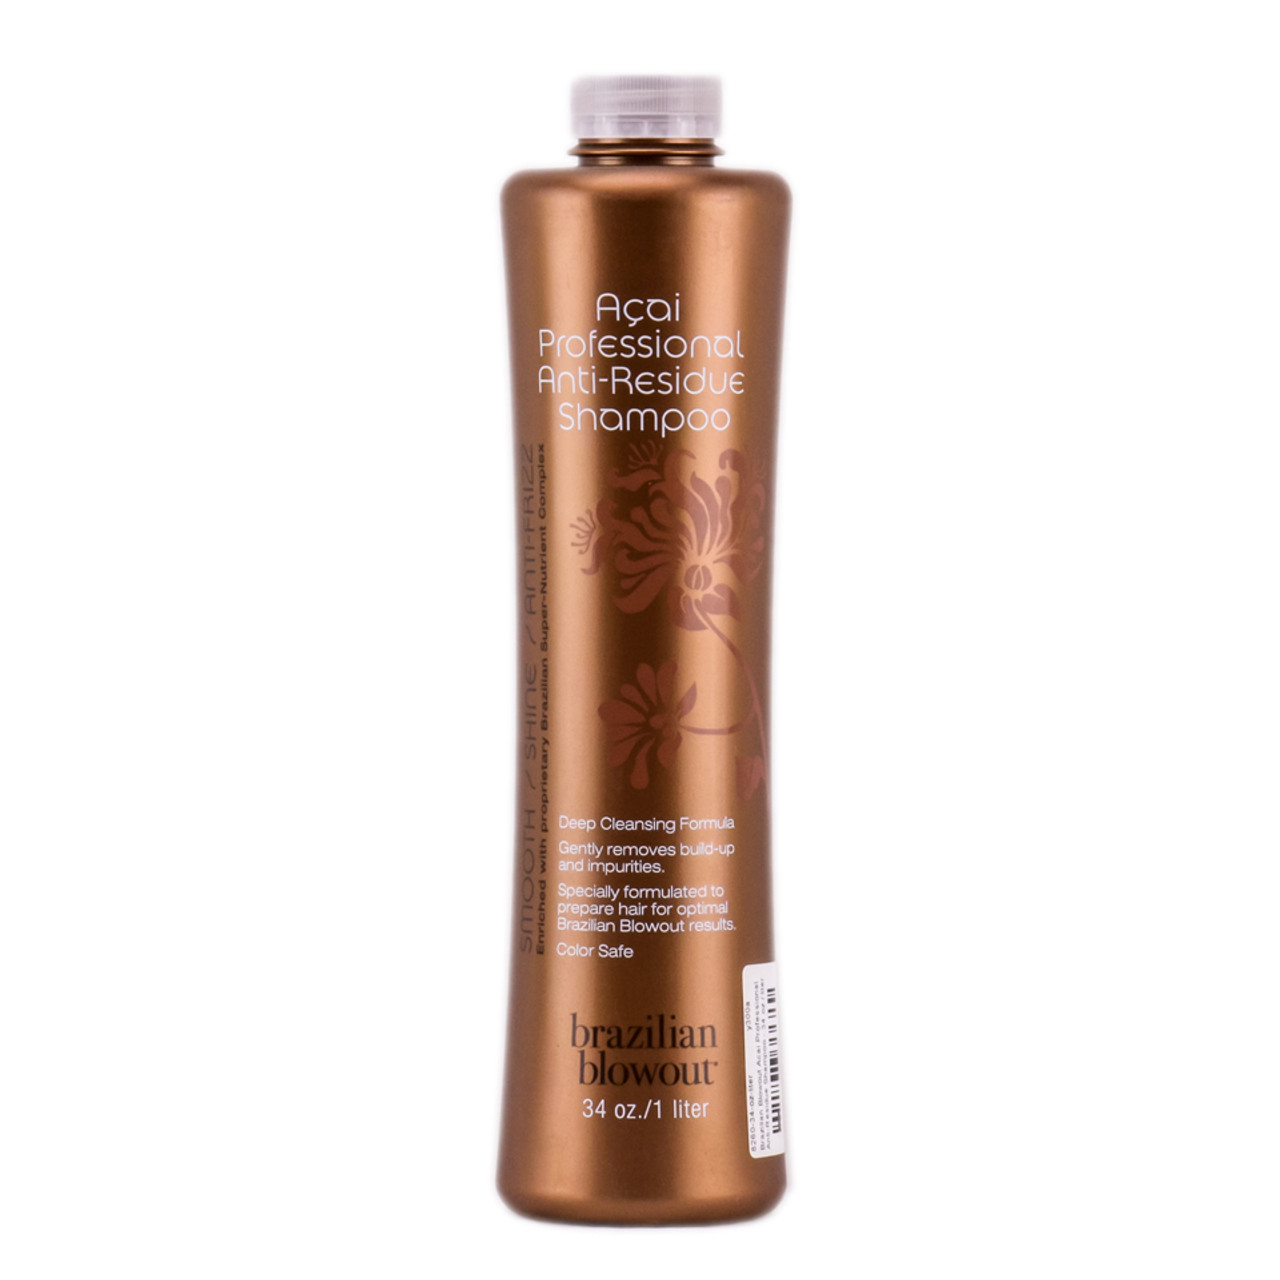 Brazilian Blowout Acai Professional Anti Residue Shampoo Sleekshop